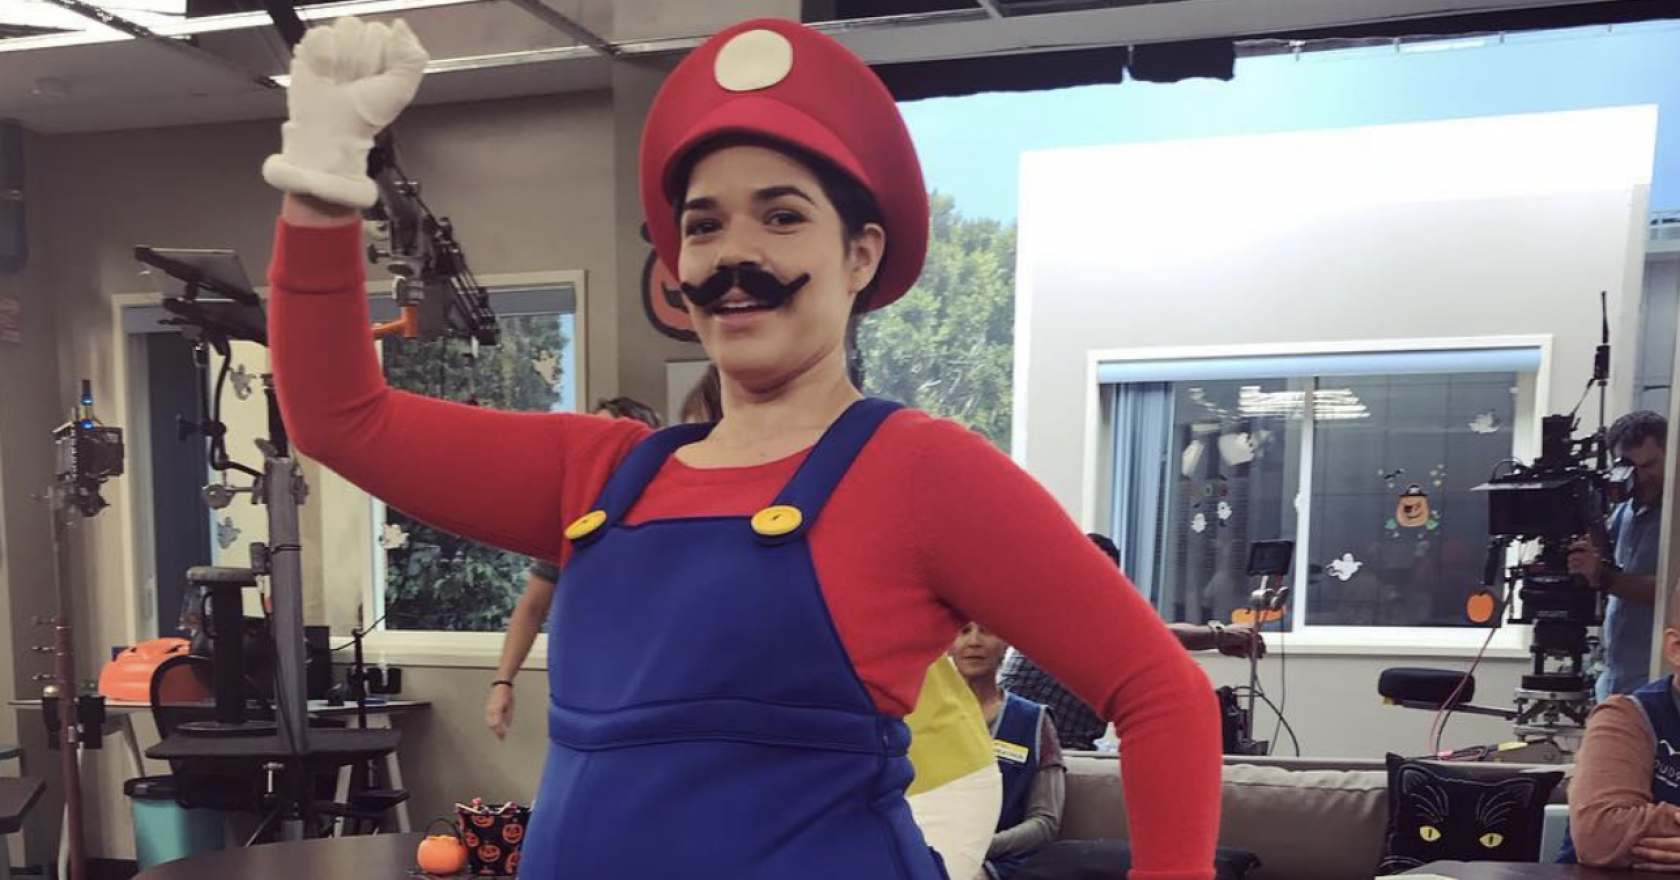 From America Ferrera's alter ego to a Game of Thrones reunion: the week's best A-list Instagrams